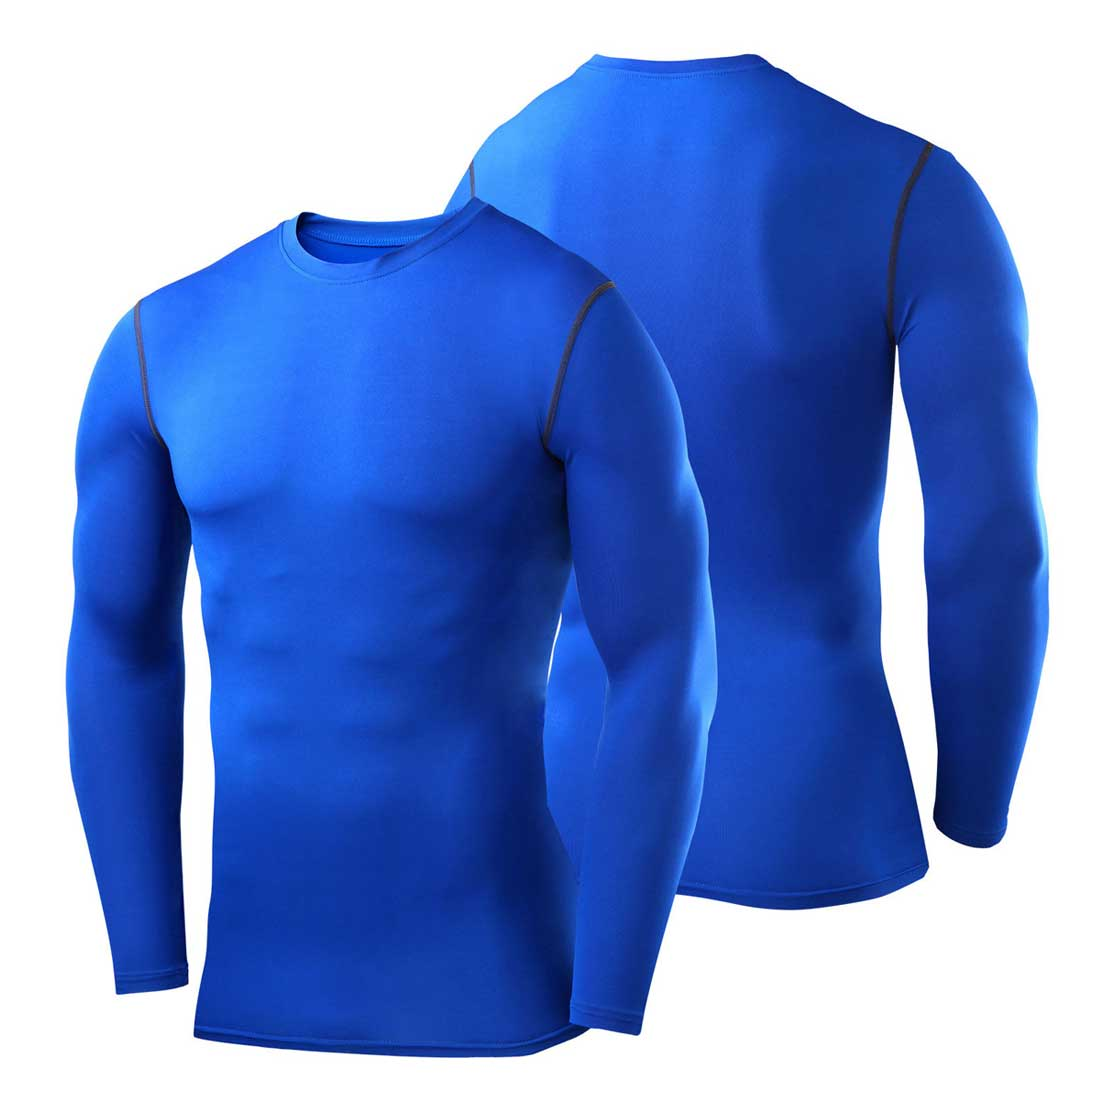 Mens Skins Compression Vest Top Long Sleeve Shirt Cycling